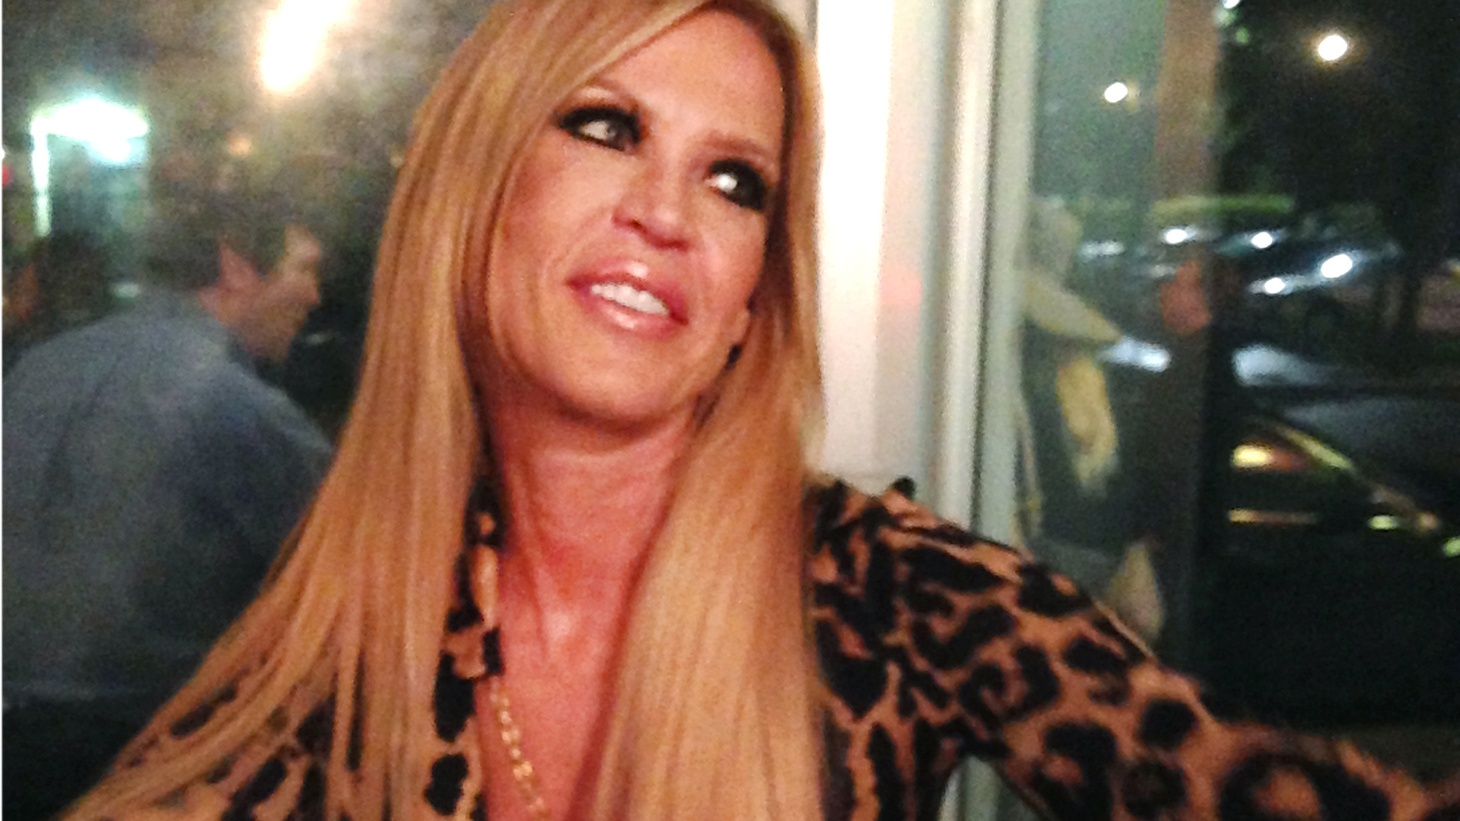 Last month, porn stars of the 1970s had a reunion. They reminisced about when police came to bust up the sets, when paychecks were stacks of cash, and when fans pretended not to recognize you on the street.      Amber Lynn started her porn career in 1983 and is still in demand. (Photo by Peter Gilstrap)